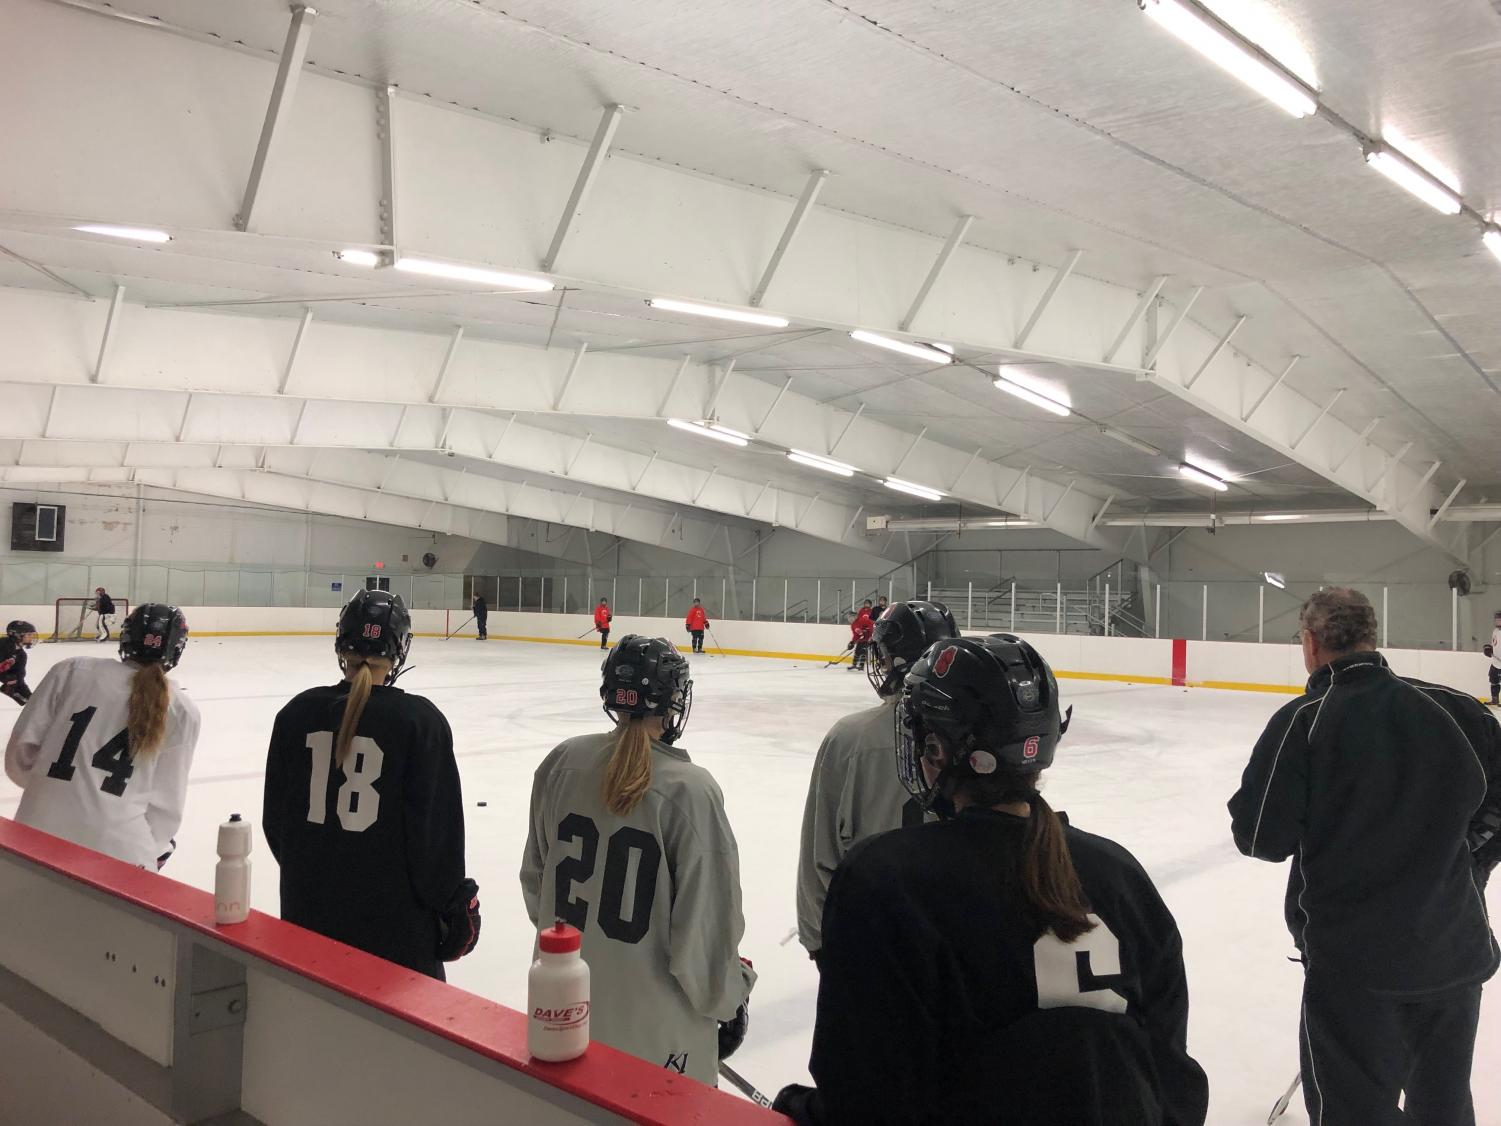 Varsity girls team practices at the Lily Lake arena on Nov. 14 as they prepare for their game against Forest Lake.